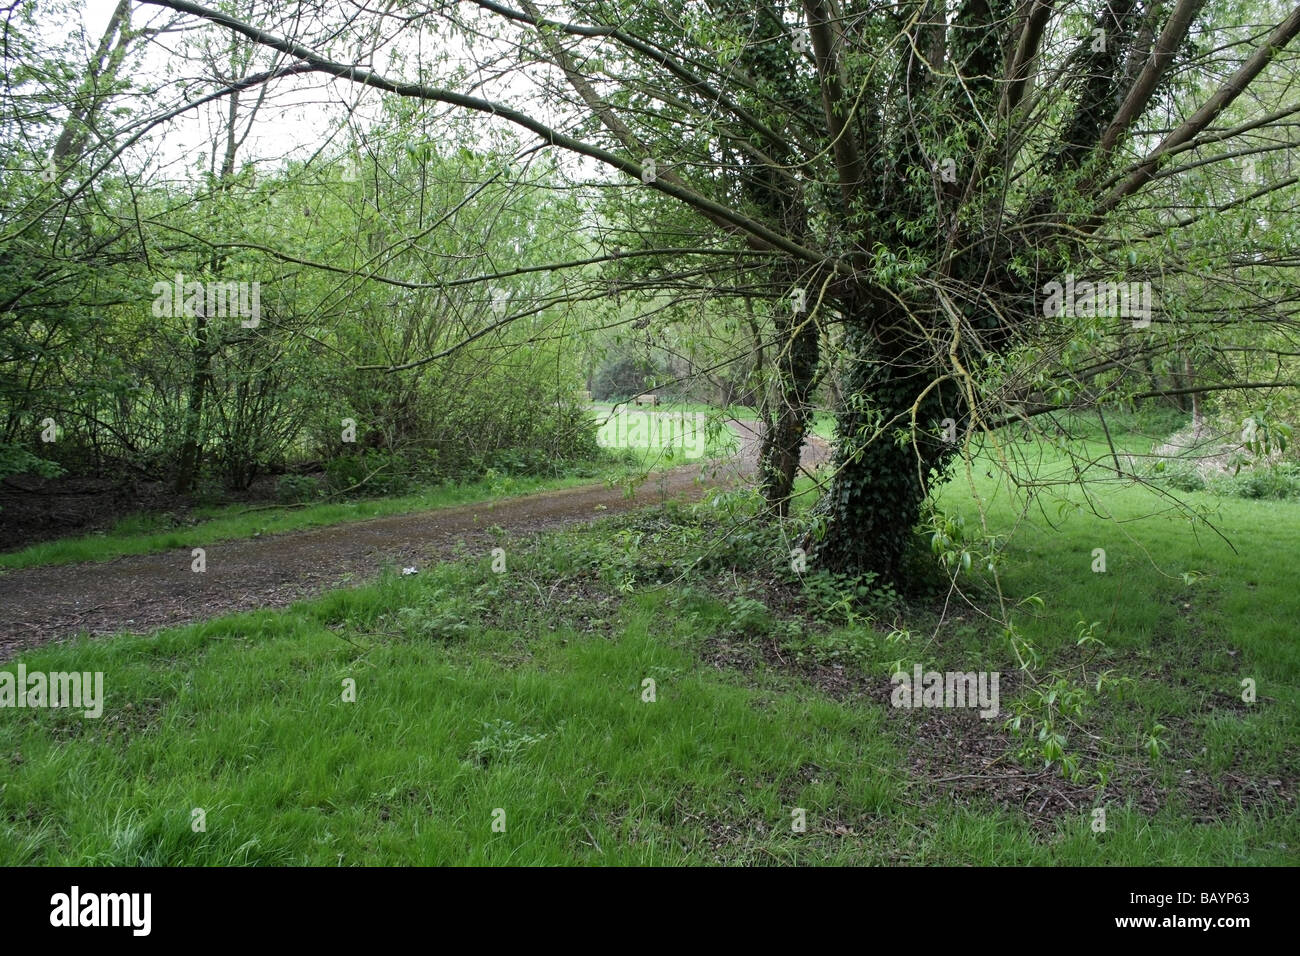 A view through a small nature reserve - Stock Image